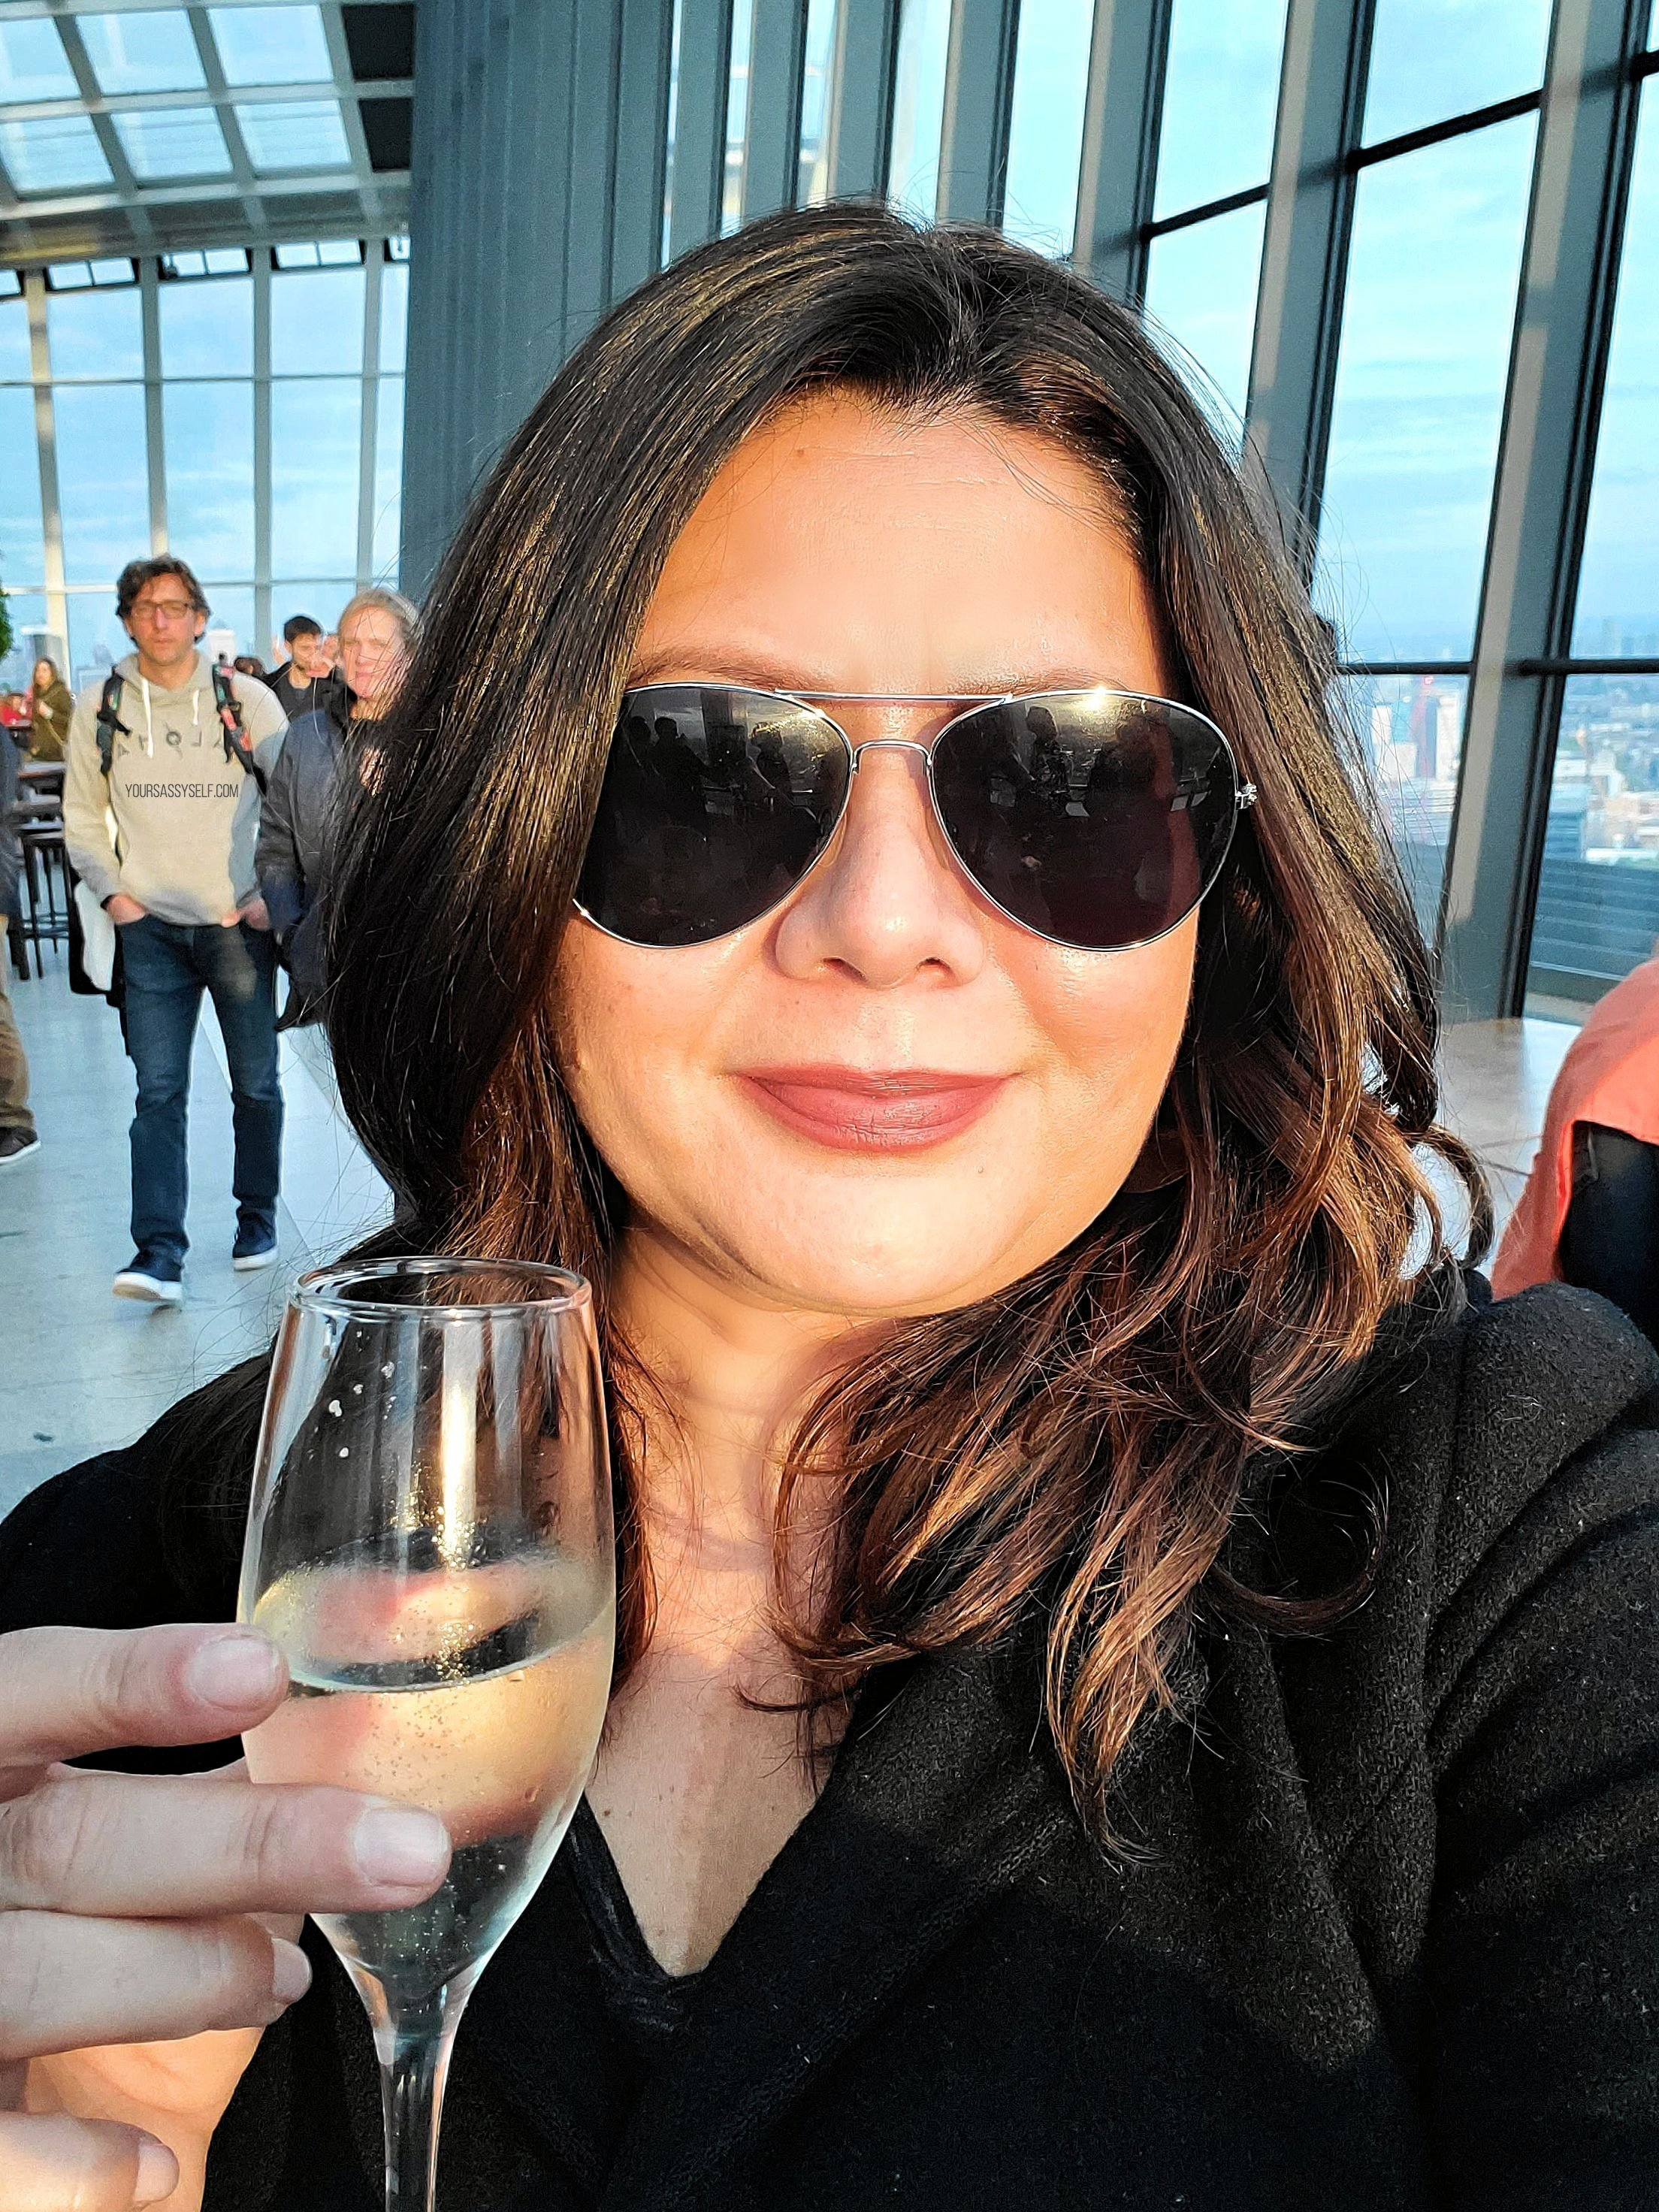 Your Sassy Self Enjoying Cocktails at Sky Garden - yoursassyself.com